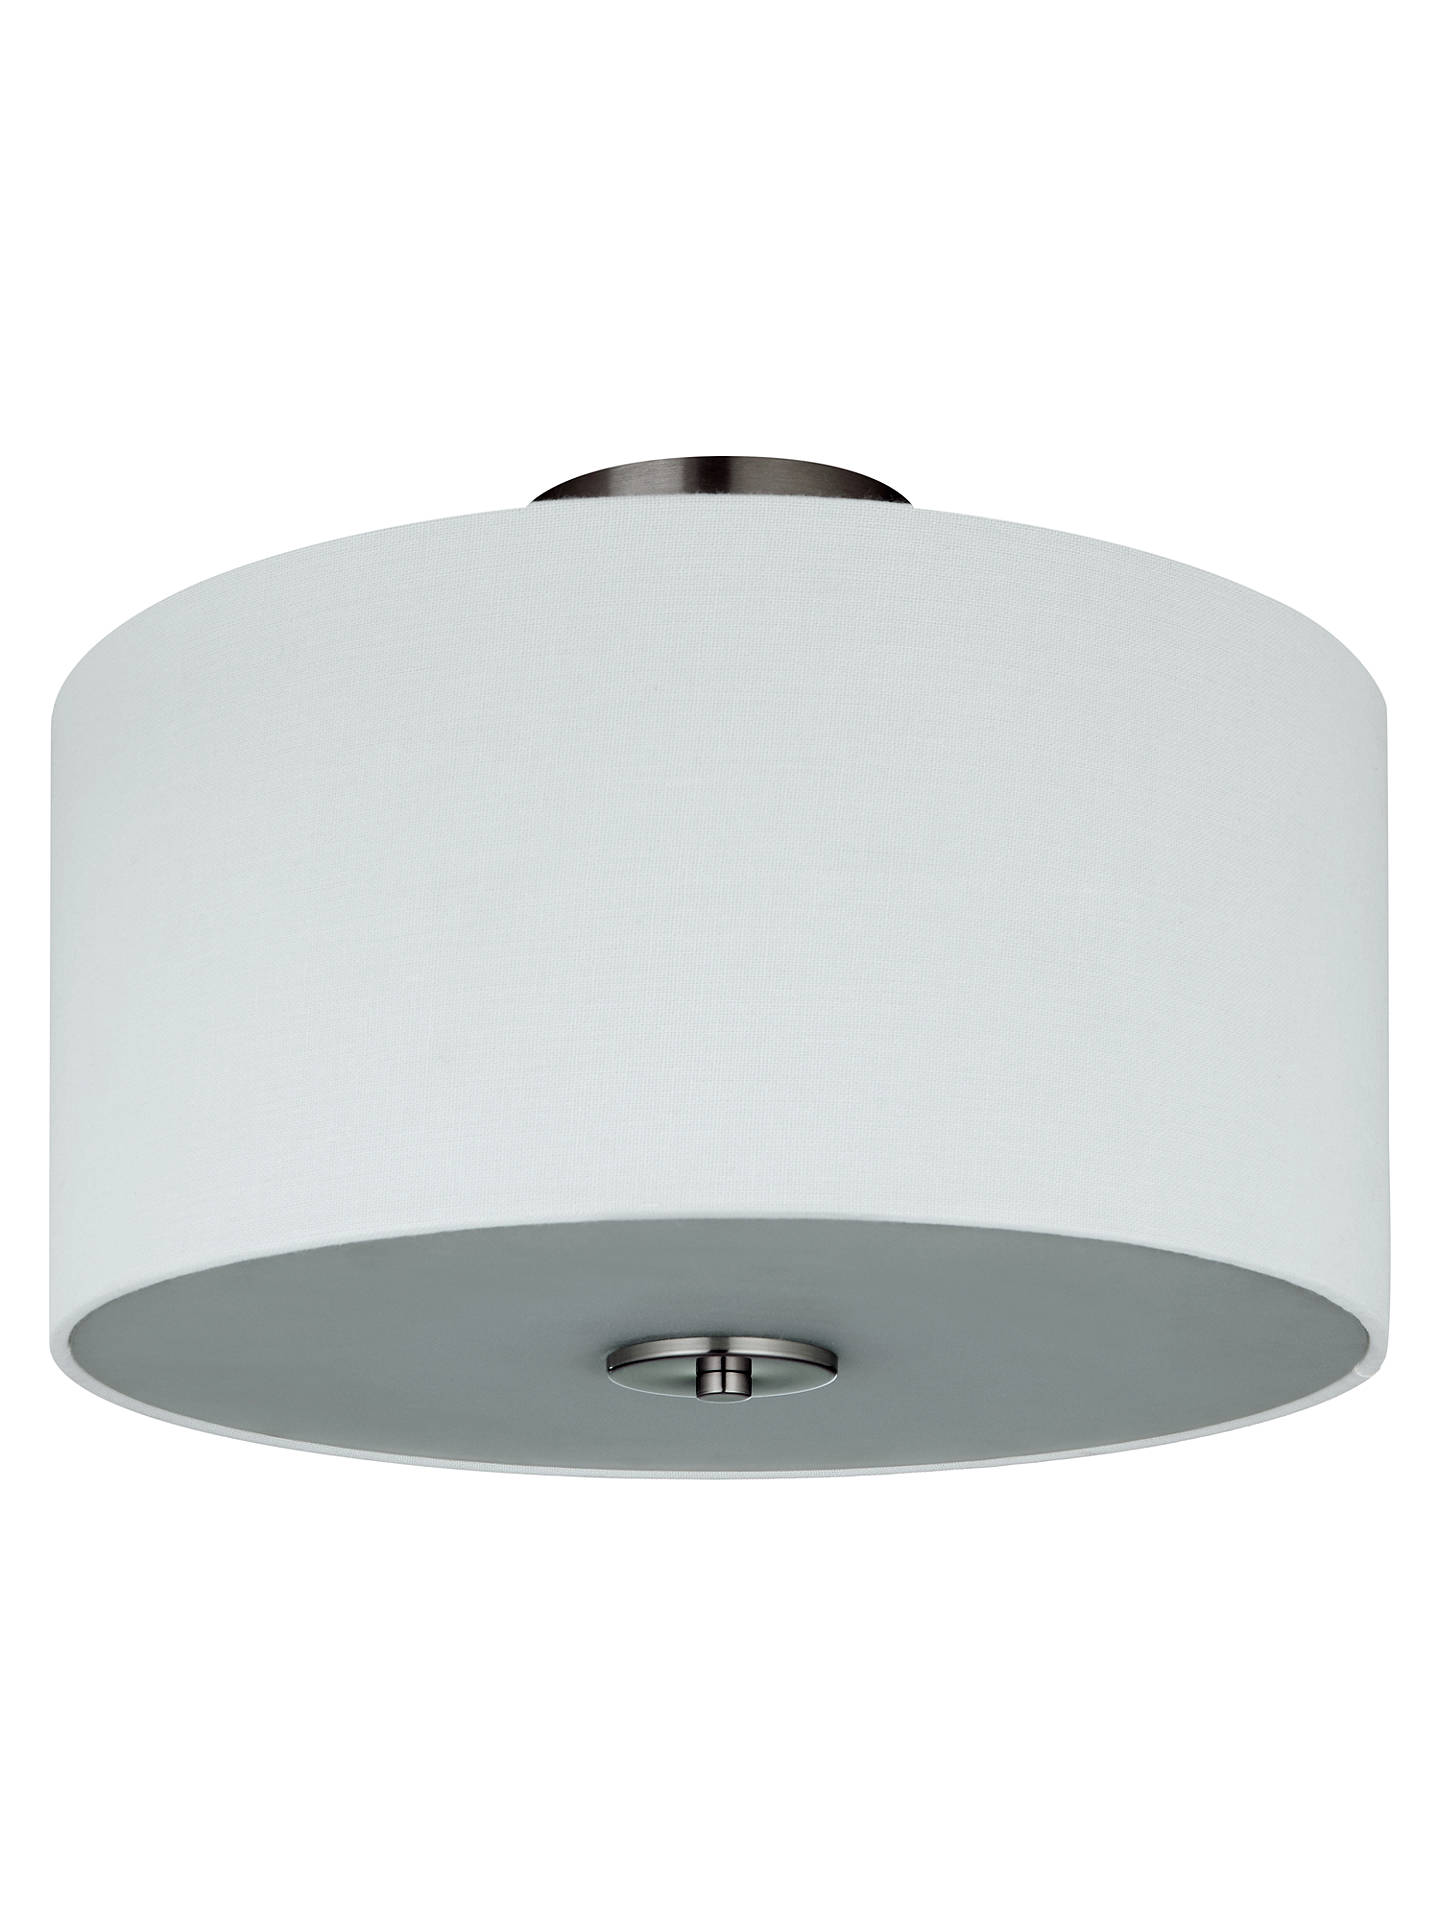 Buy John Lewis & Partners Jamieson Semi-Flush Ceiling Light, Satin Nickel Online at johnlewis.com